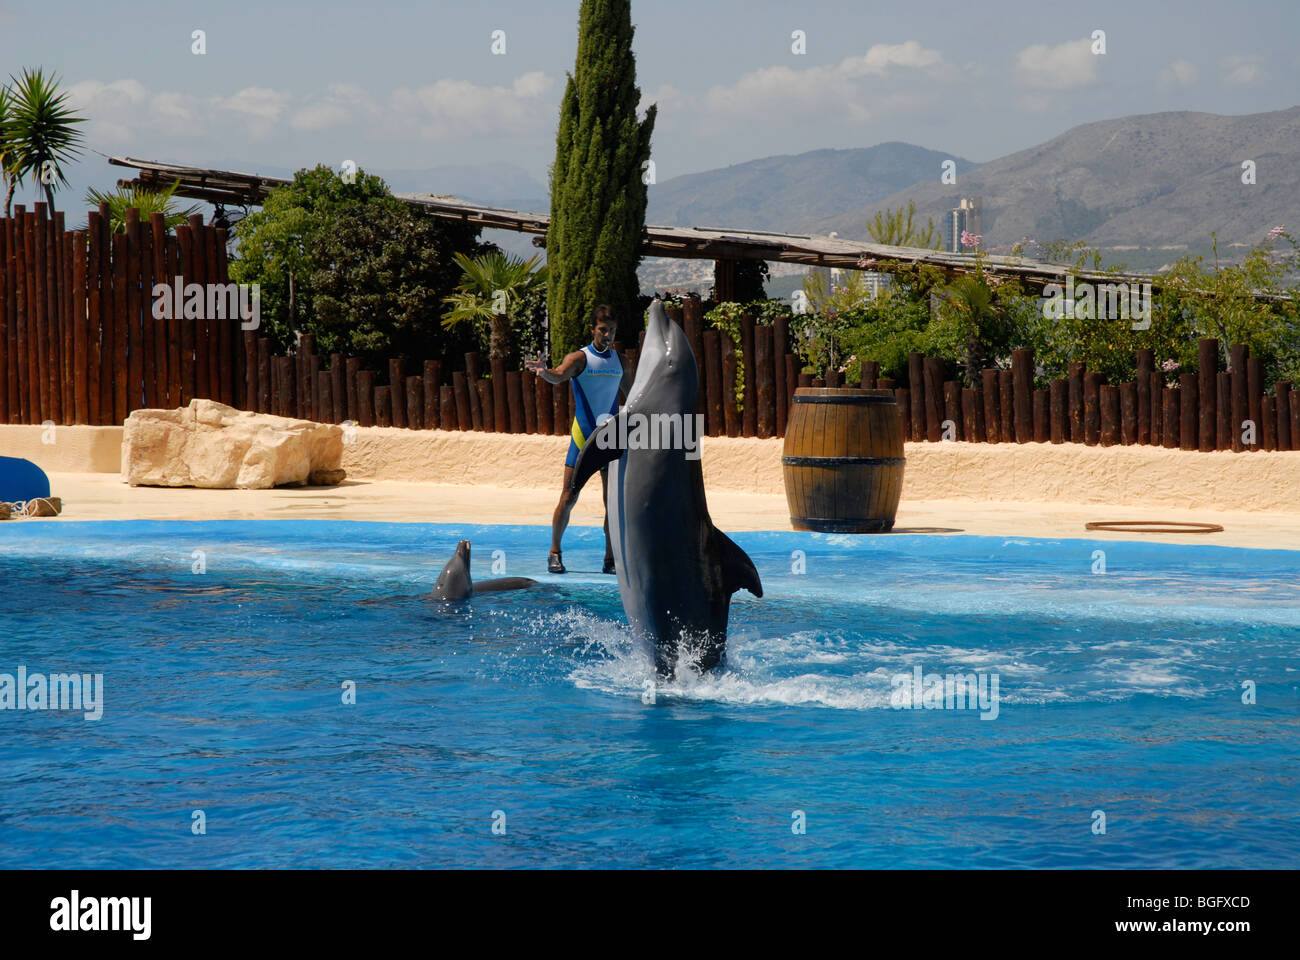 performing dolphin and trainer, Dolphin Show, Mundomar, Benidorm, Alicante Province, Comunidad Valenciana, Spain Stock Photo